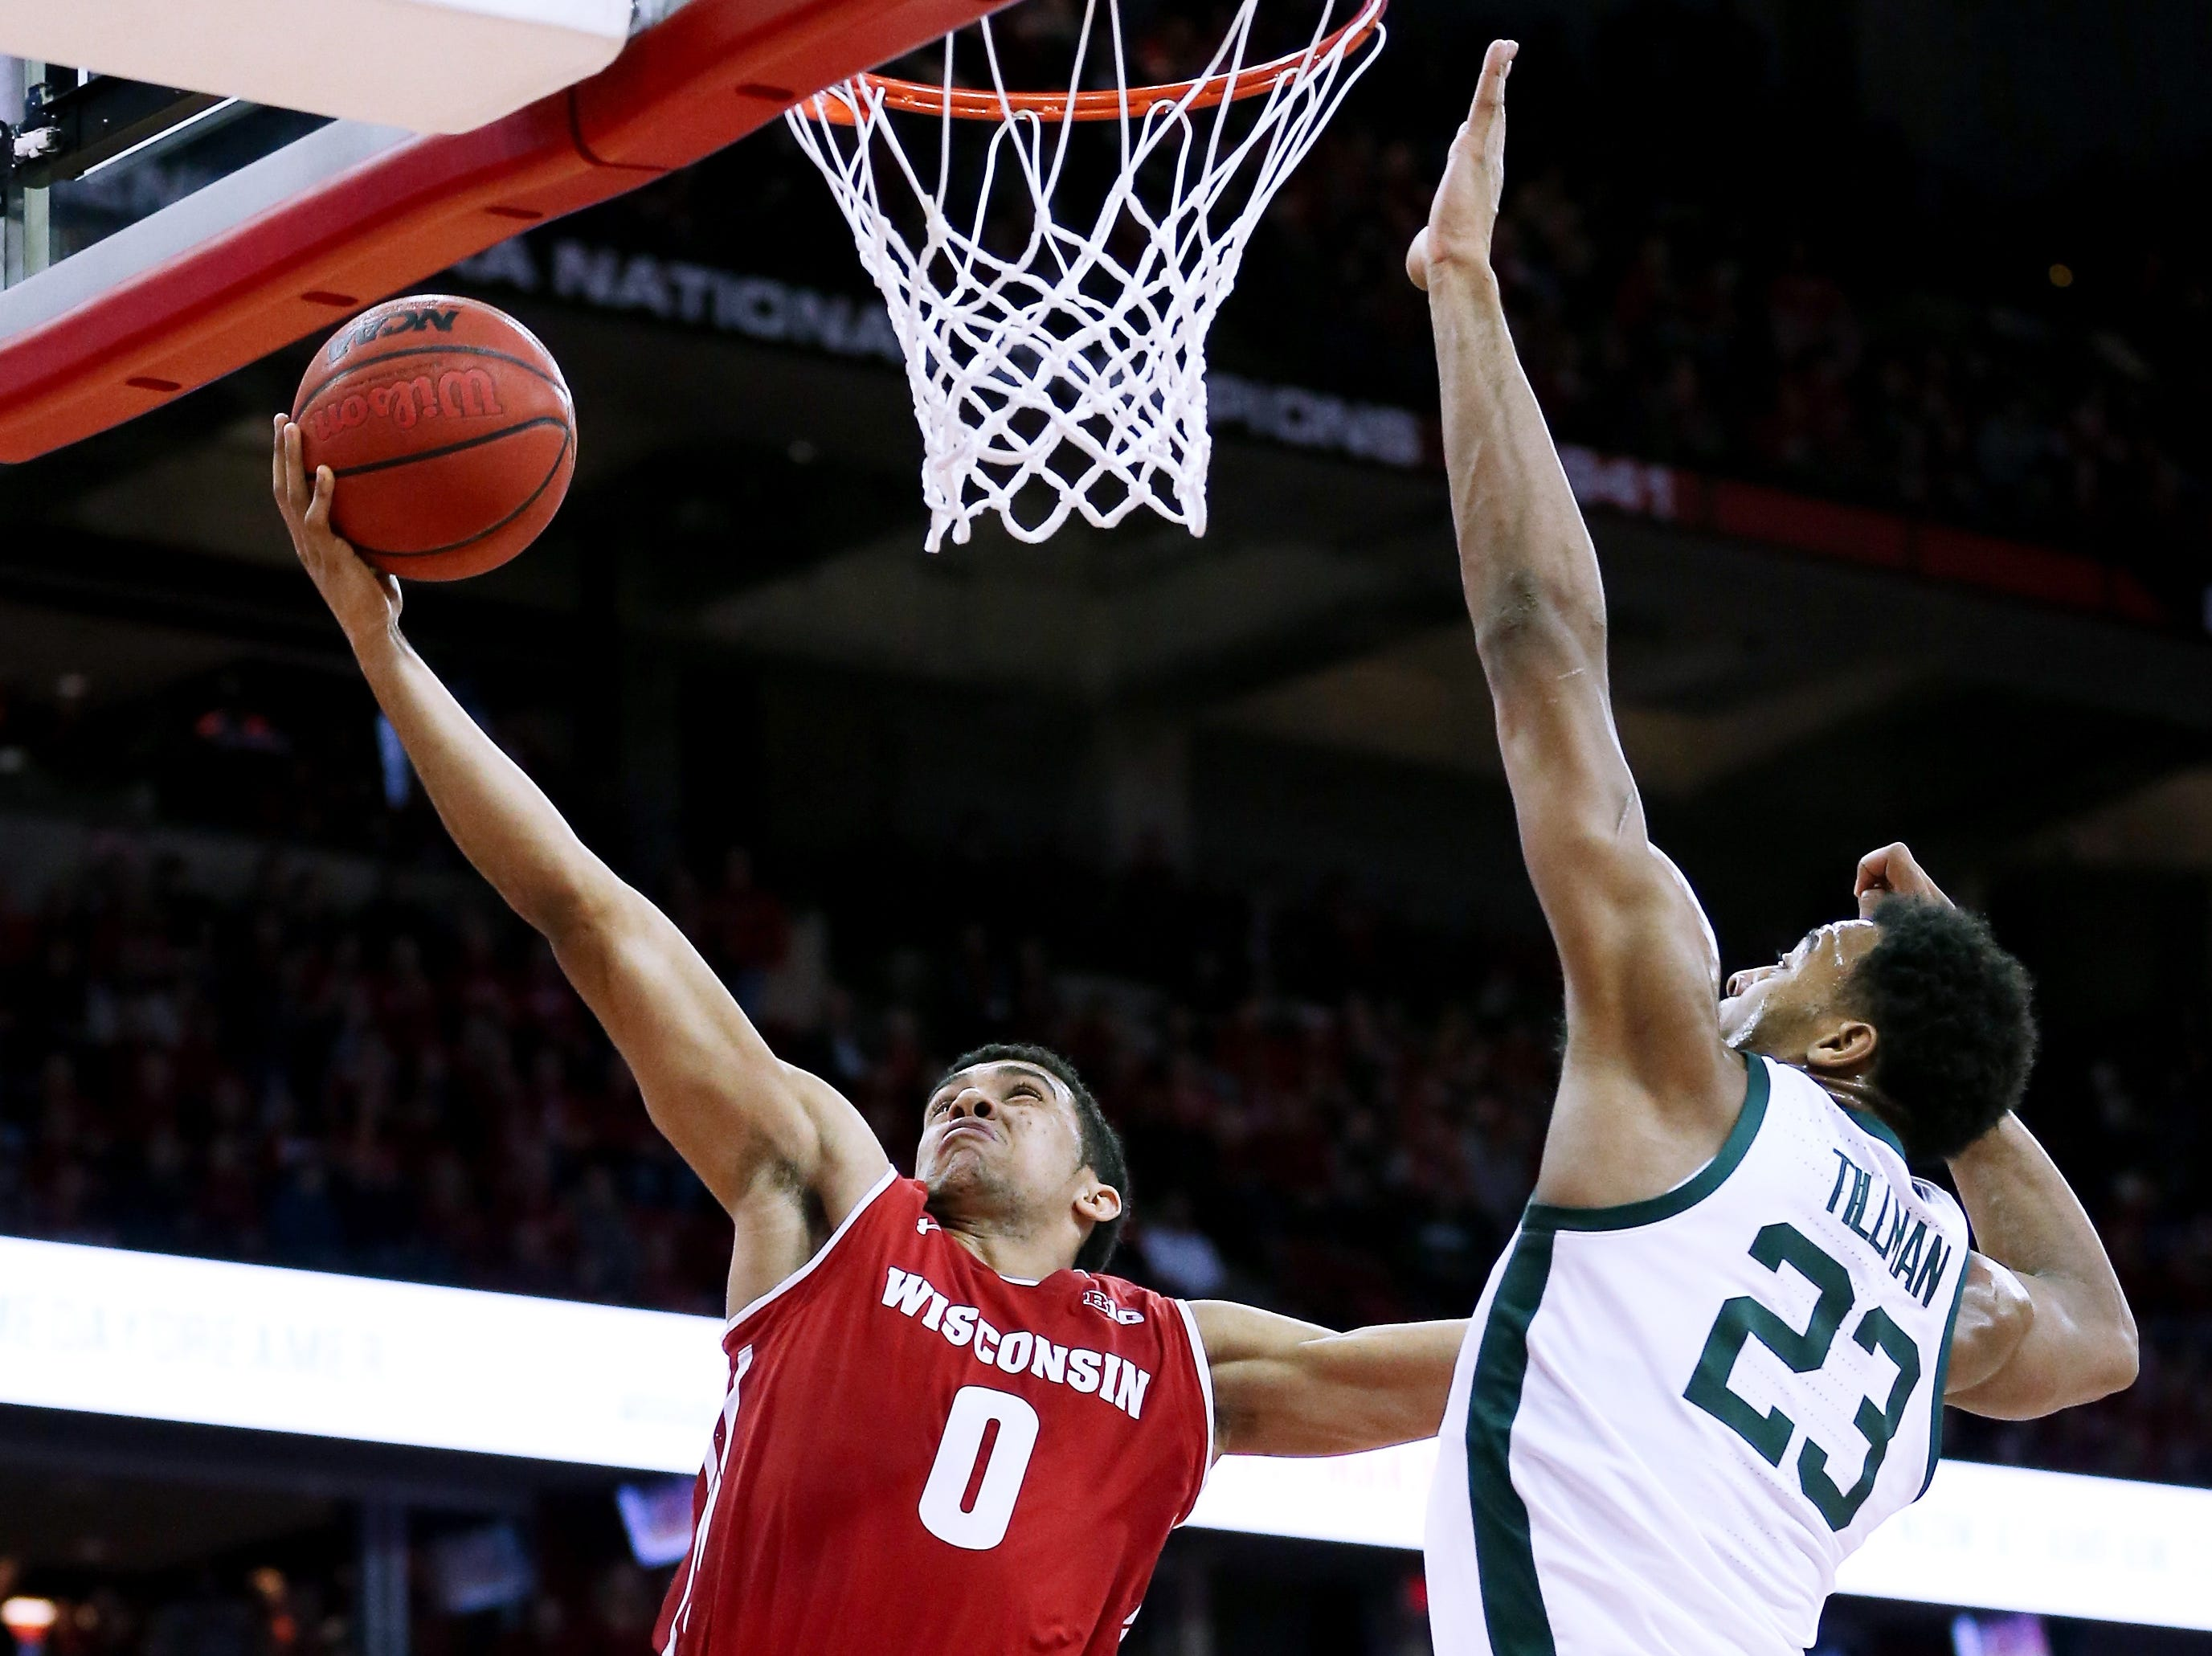 D'Mitrik Trice #0 of the Wisconsin Badgers attempts a shot while being guarded by Xavier Tillman #23 of the Michigan State Spartans in the first half at the Kohl Center on February 12, 2019 in Madison, Wisconsin.